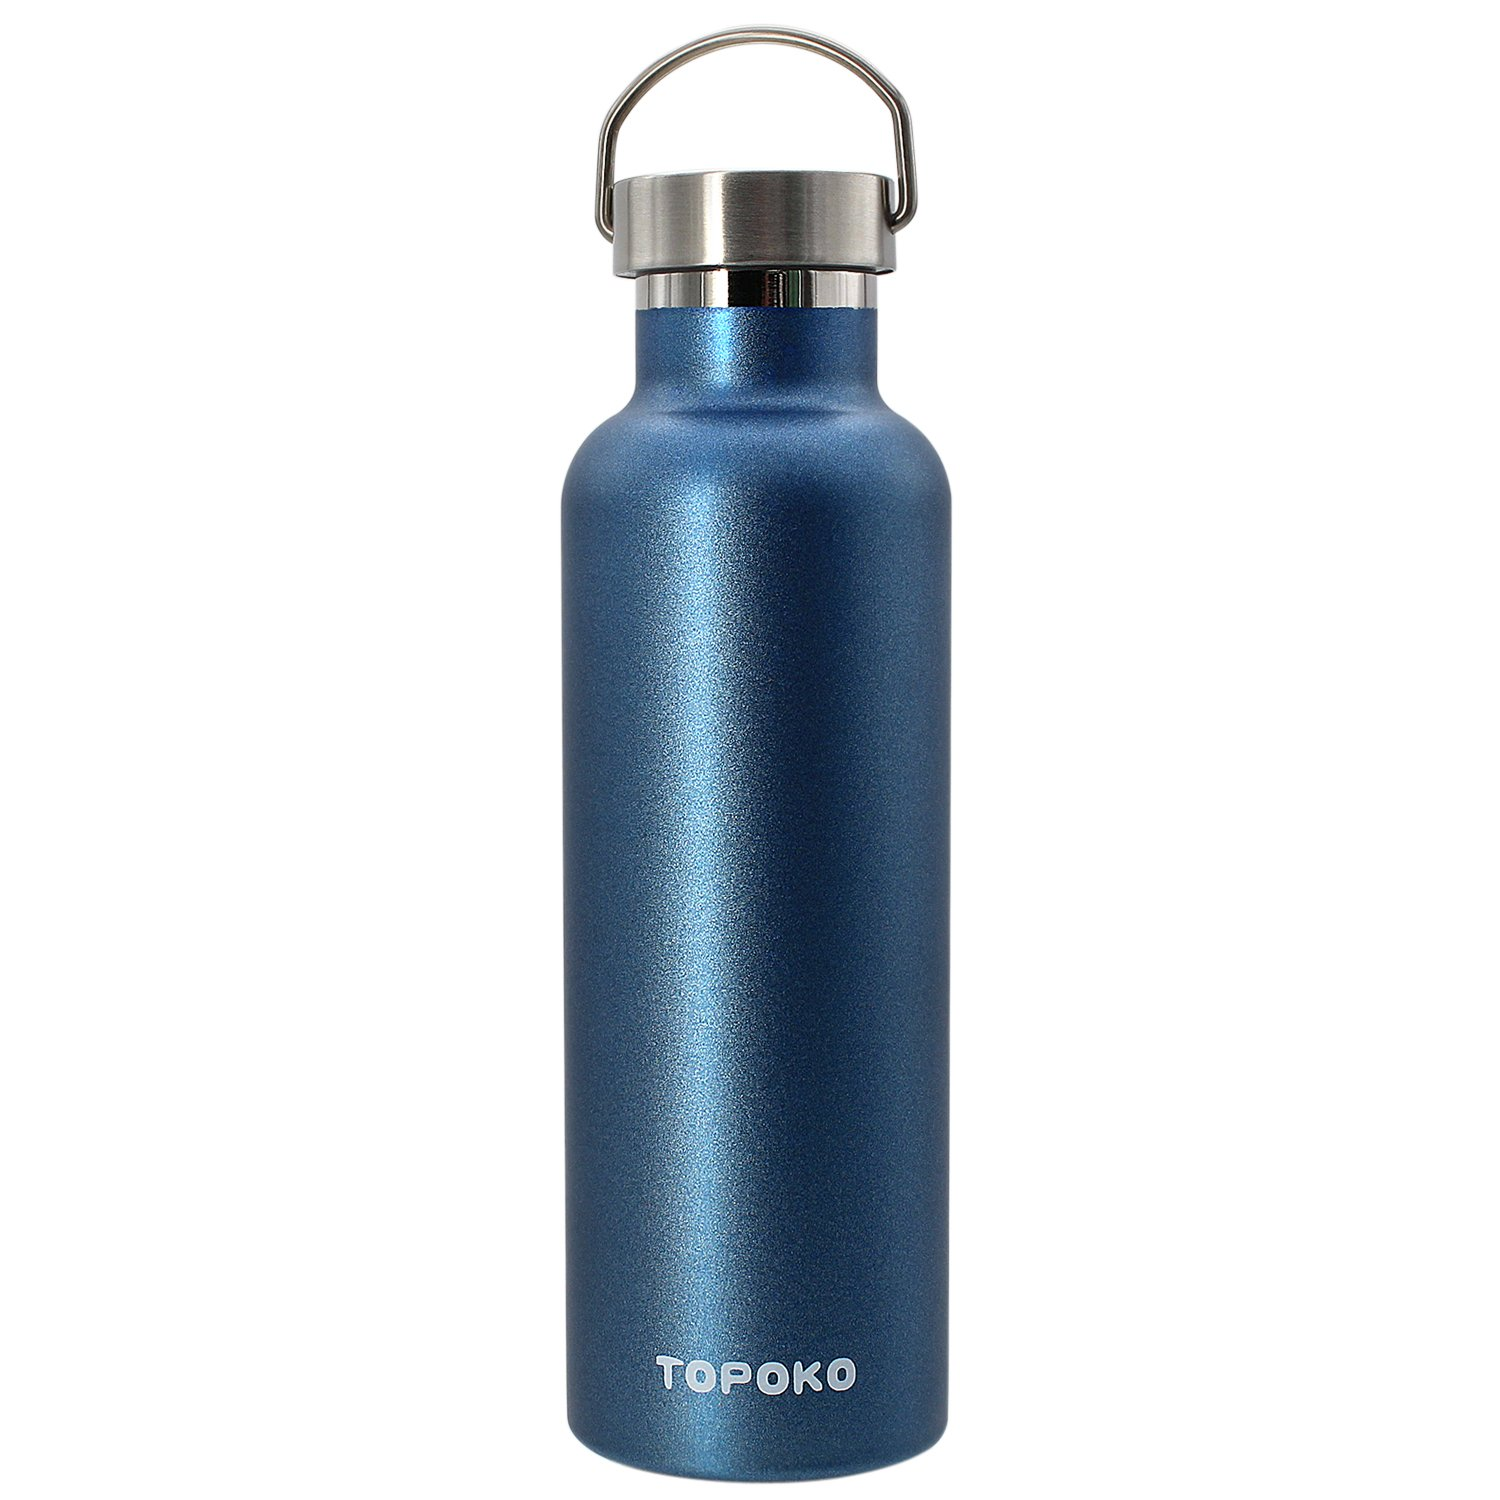 TOPOKO 25 oz Stainless Steel Vacuum Insulated Water Bottle, Keeps Drink Cold up to 24 Hours & Hot up to 12 Hours, Leak Proof and Sweat Proof. Large Capacity Sports Bottle